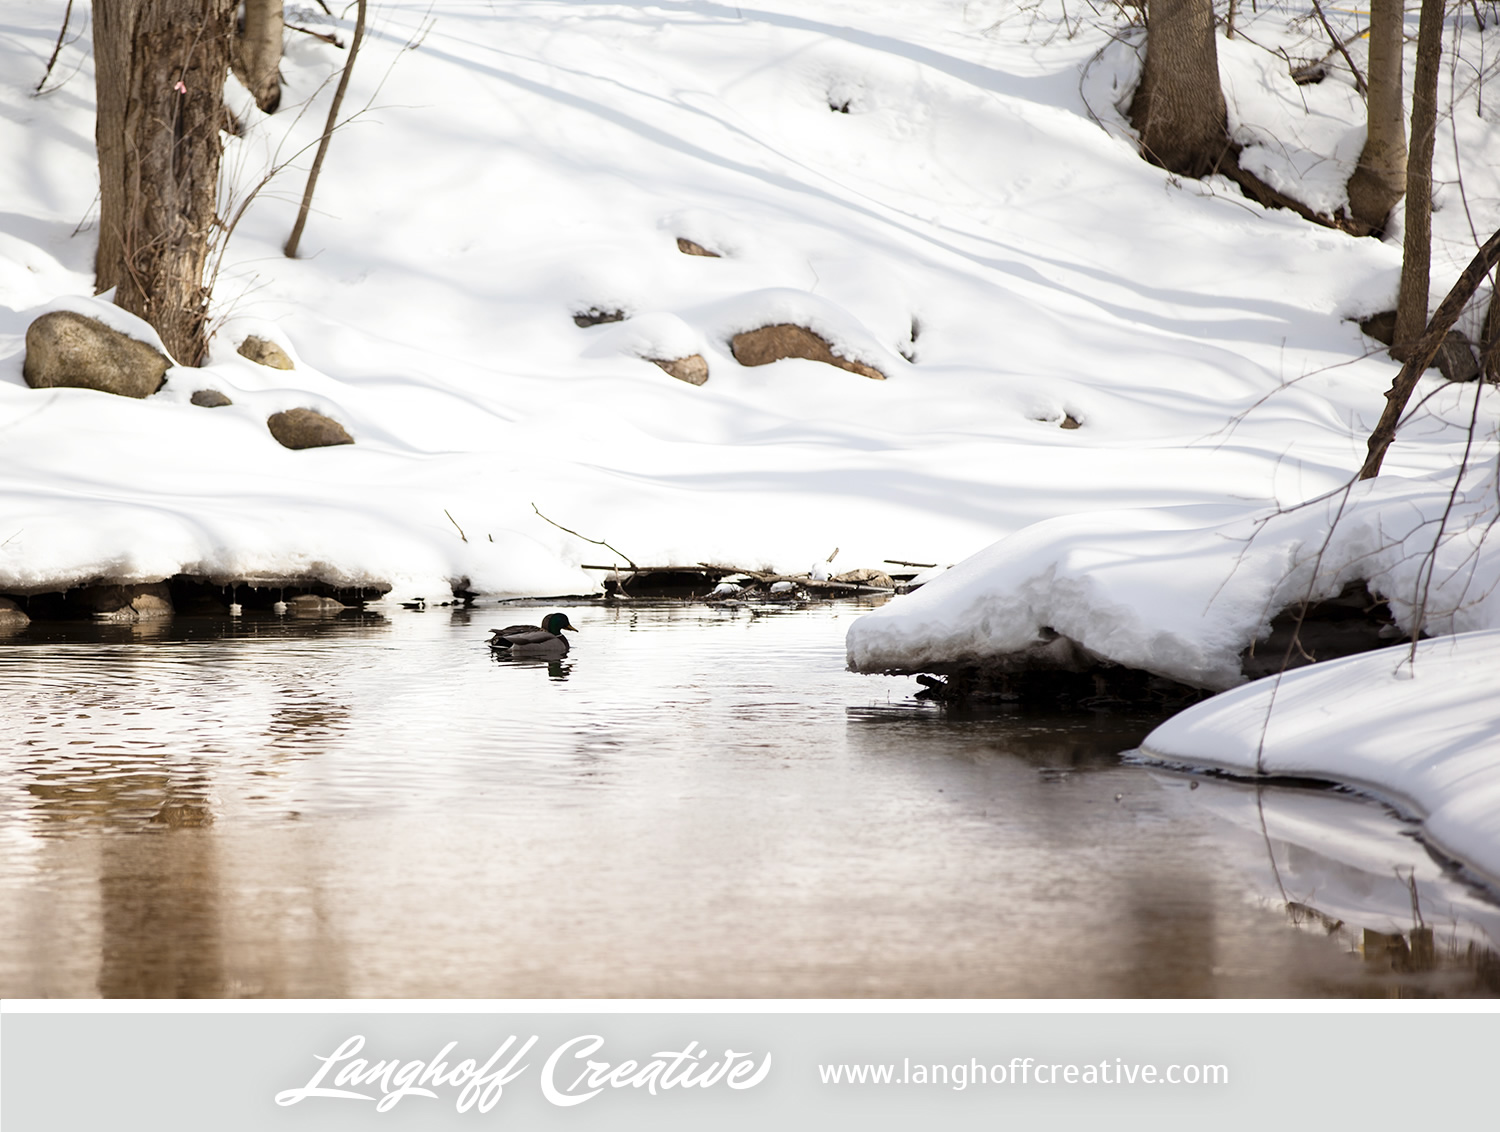 LanghoffCreative-20130308-winter4-image.jpg